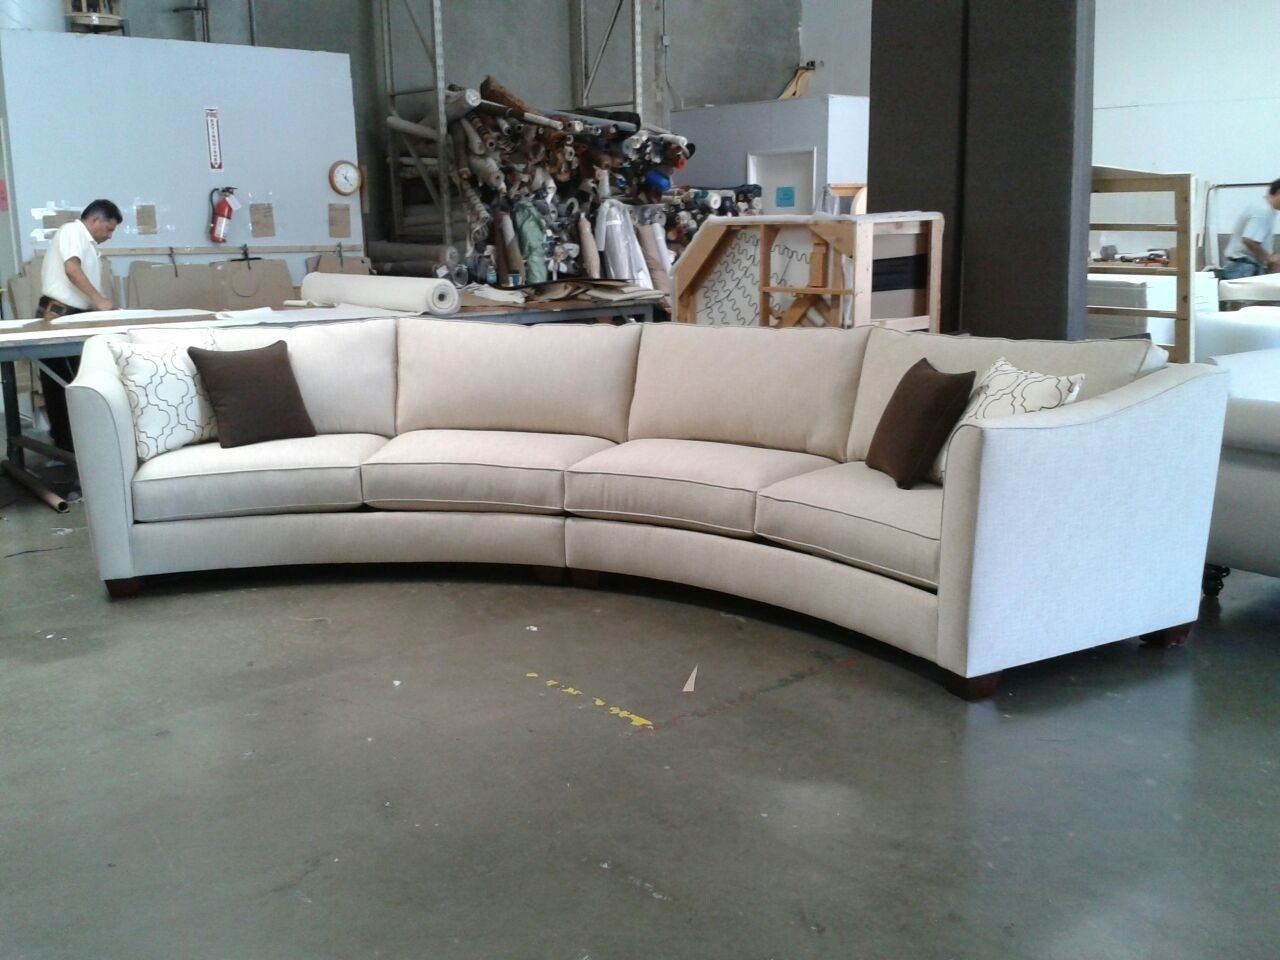 Curved Sectional Sofa Set Rich Comfortable Upholstered Fabric With Regard To Contemporary Curved Sofas (View 11 of 12)